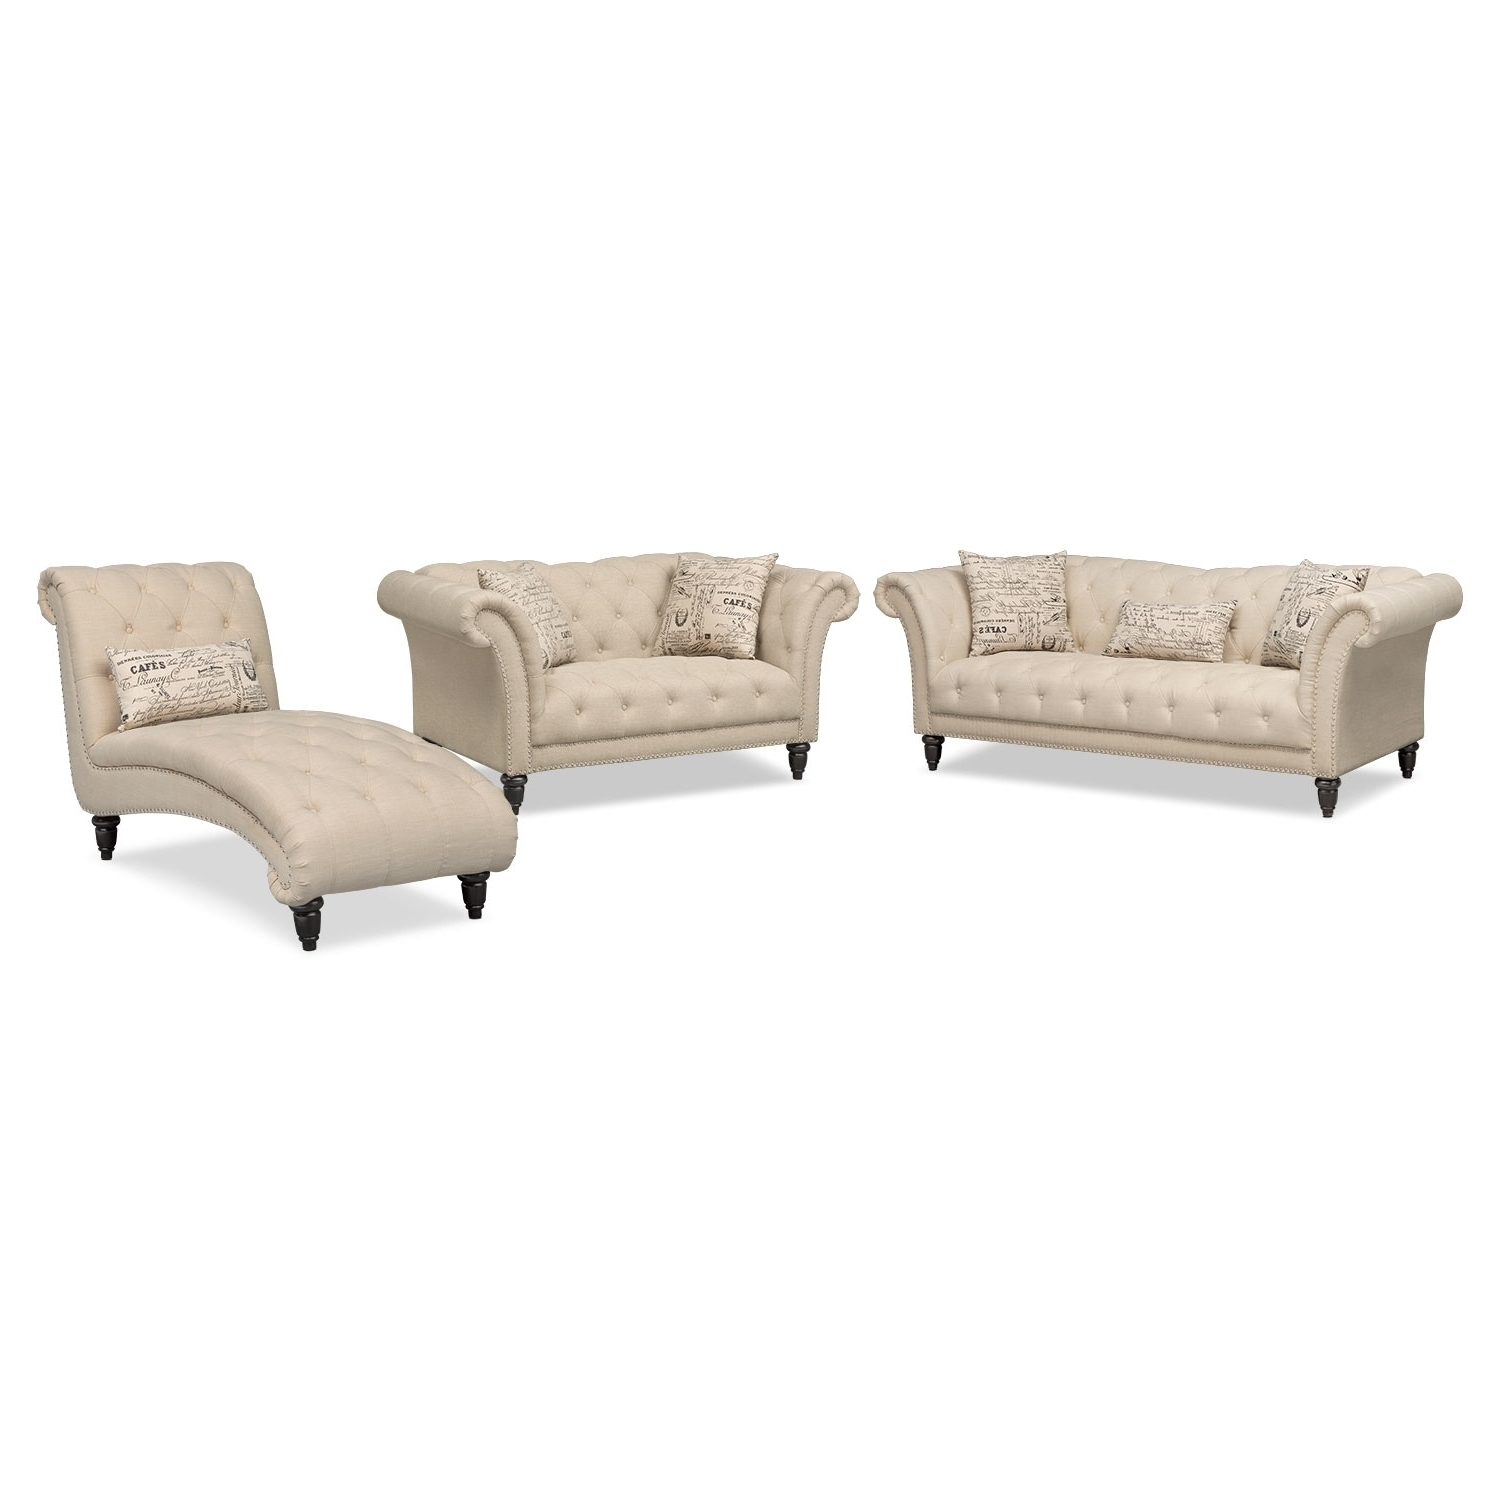 Newest Marisol Sofa, Loveseat And Chaise Set – Beige (View 5 of 15)